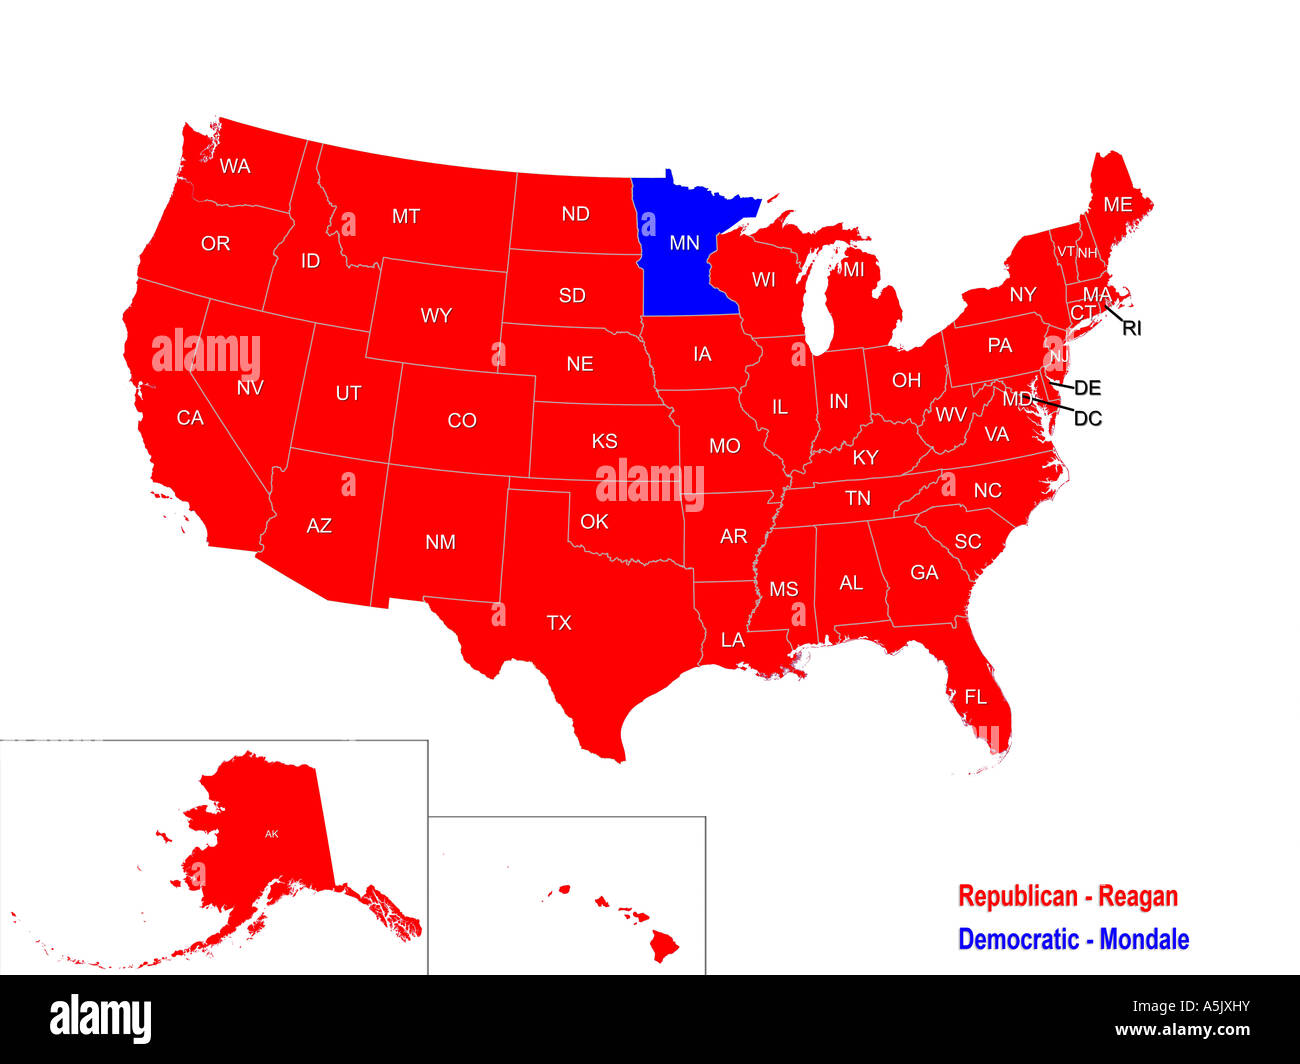 United States Presidential Election Results Map For 1984 Stock Photo on